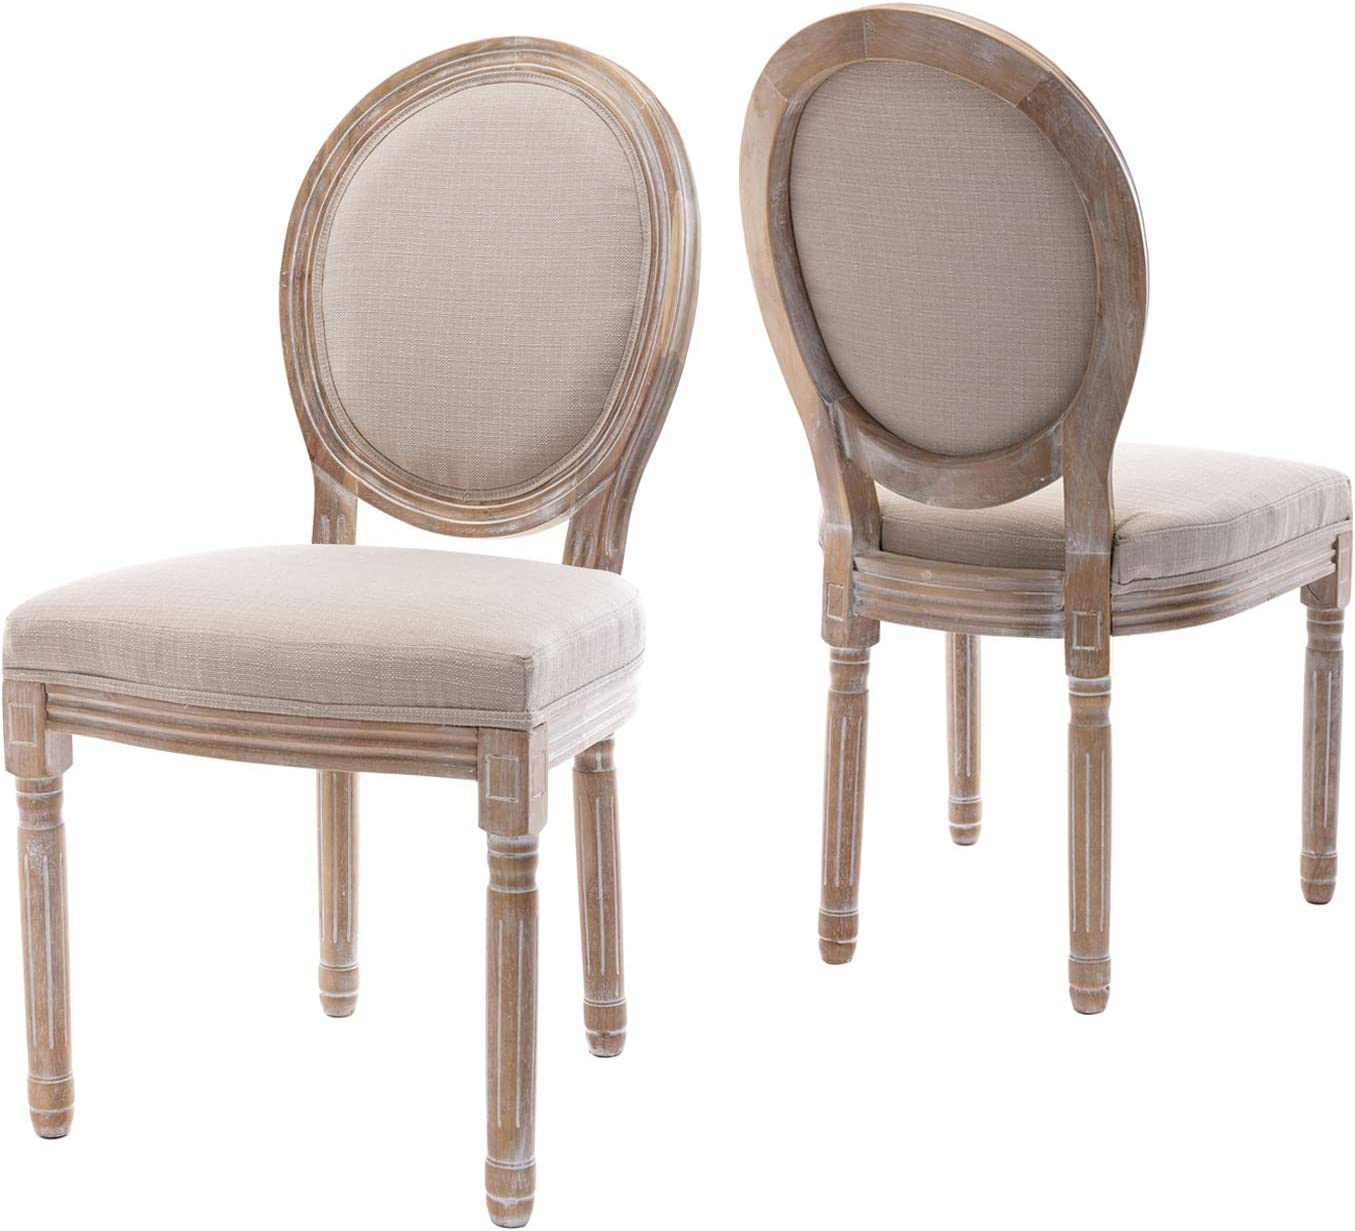 Oval back Louis style upholstered side chair. #frenchcountry #chairs #diningfurniture #diningchair #louisstyle